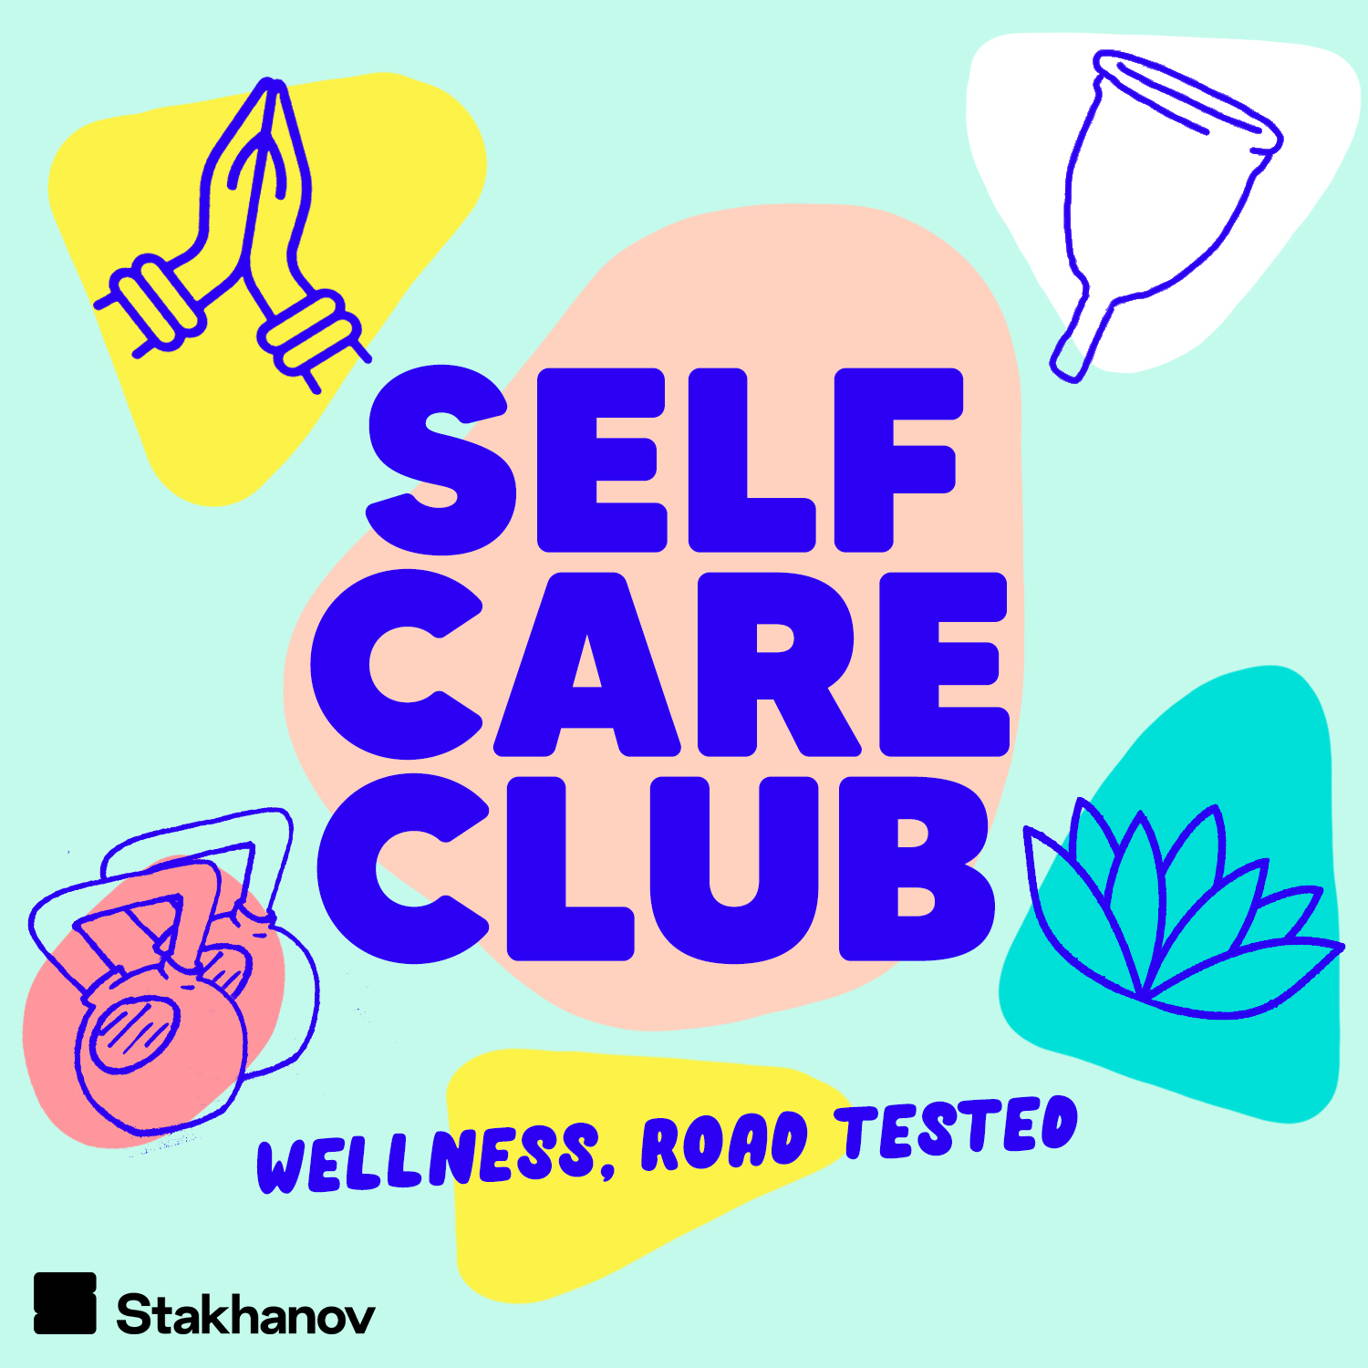 The artwork for the Self Care Club: Wellness, road tested podcast.